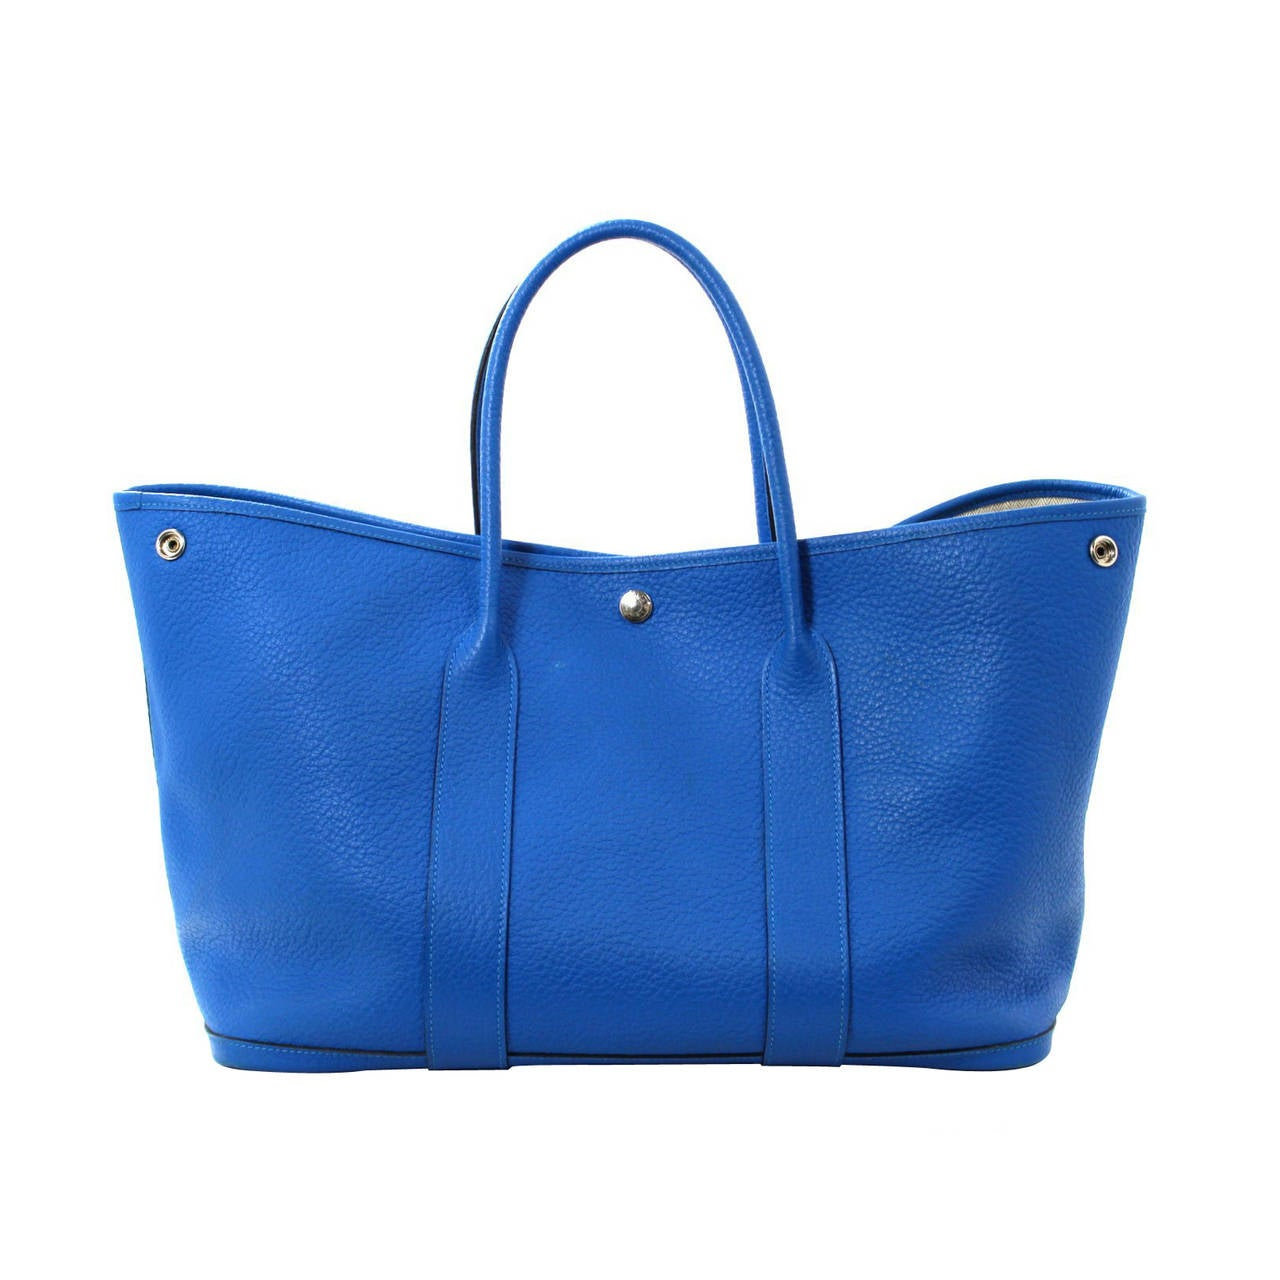 HERMES All Leather Garden Party Tote- Blue Electrique Fjord, 36 cm ...